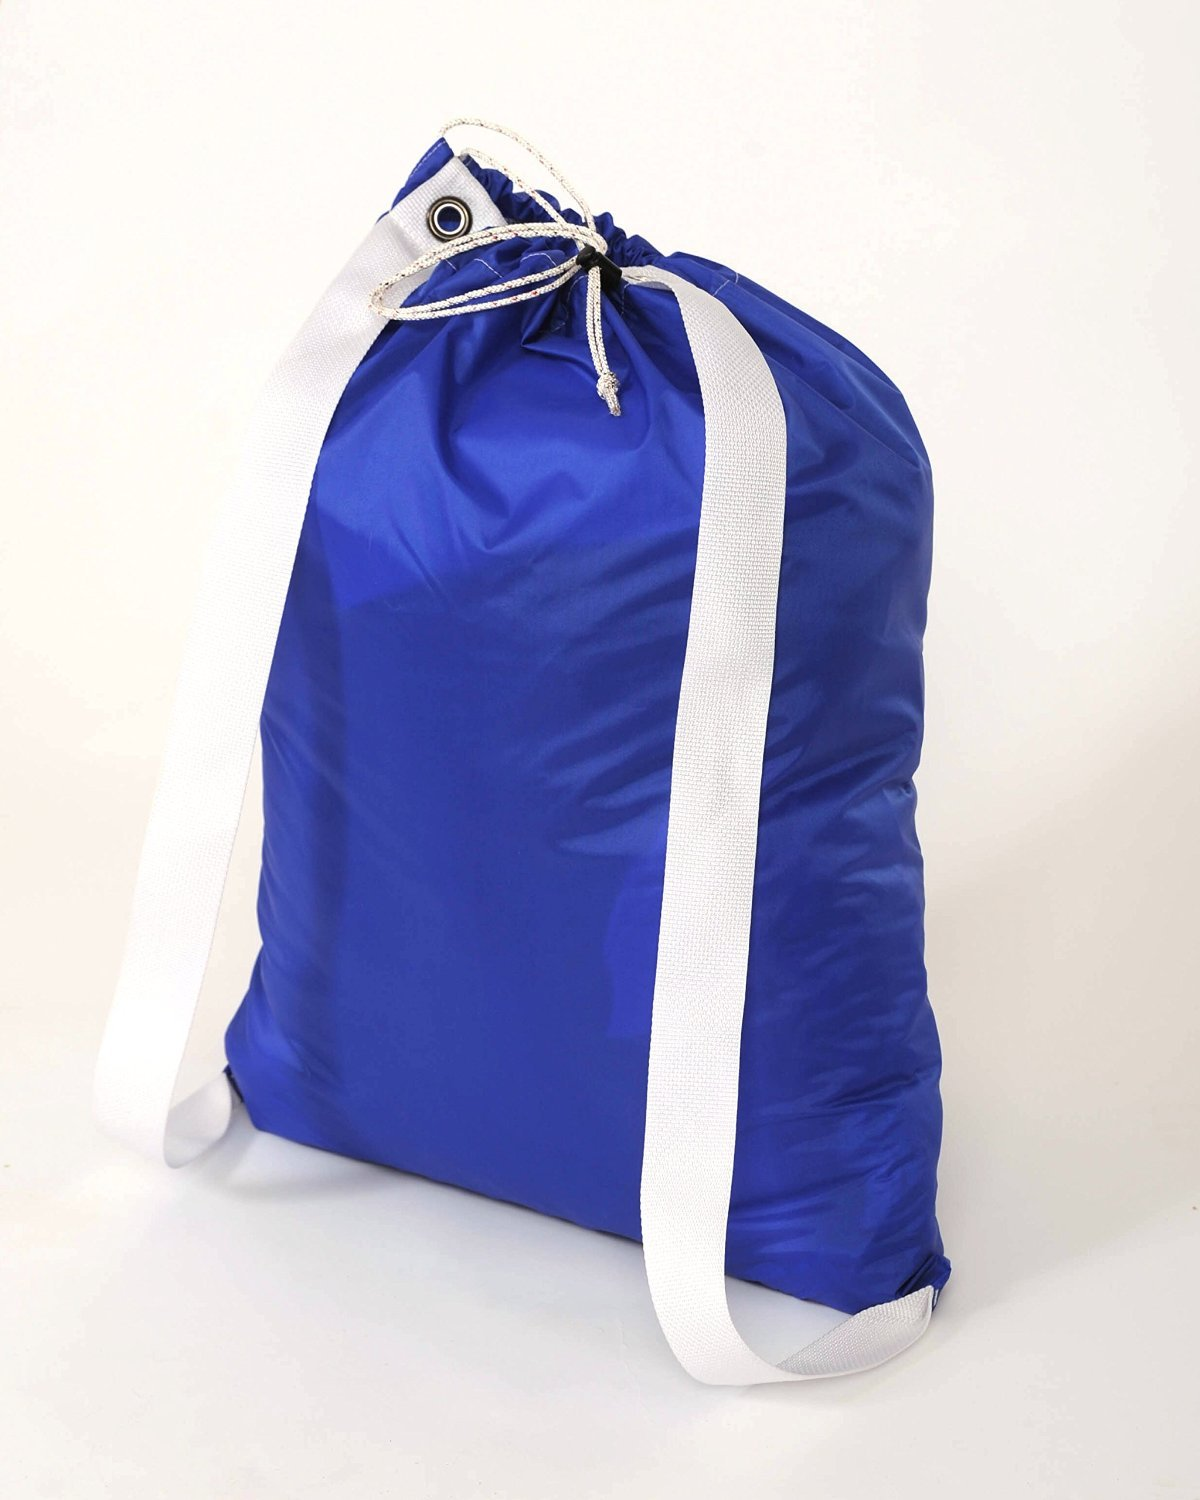 Where Can I Buy Laundry Bags Backpack Laundry Bag 22x28 Commercial Grade 100 Nylon